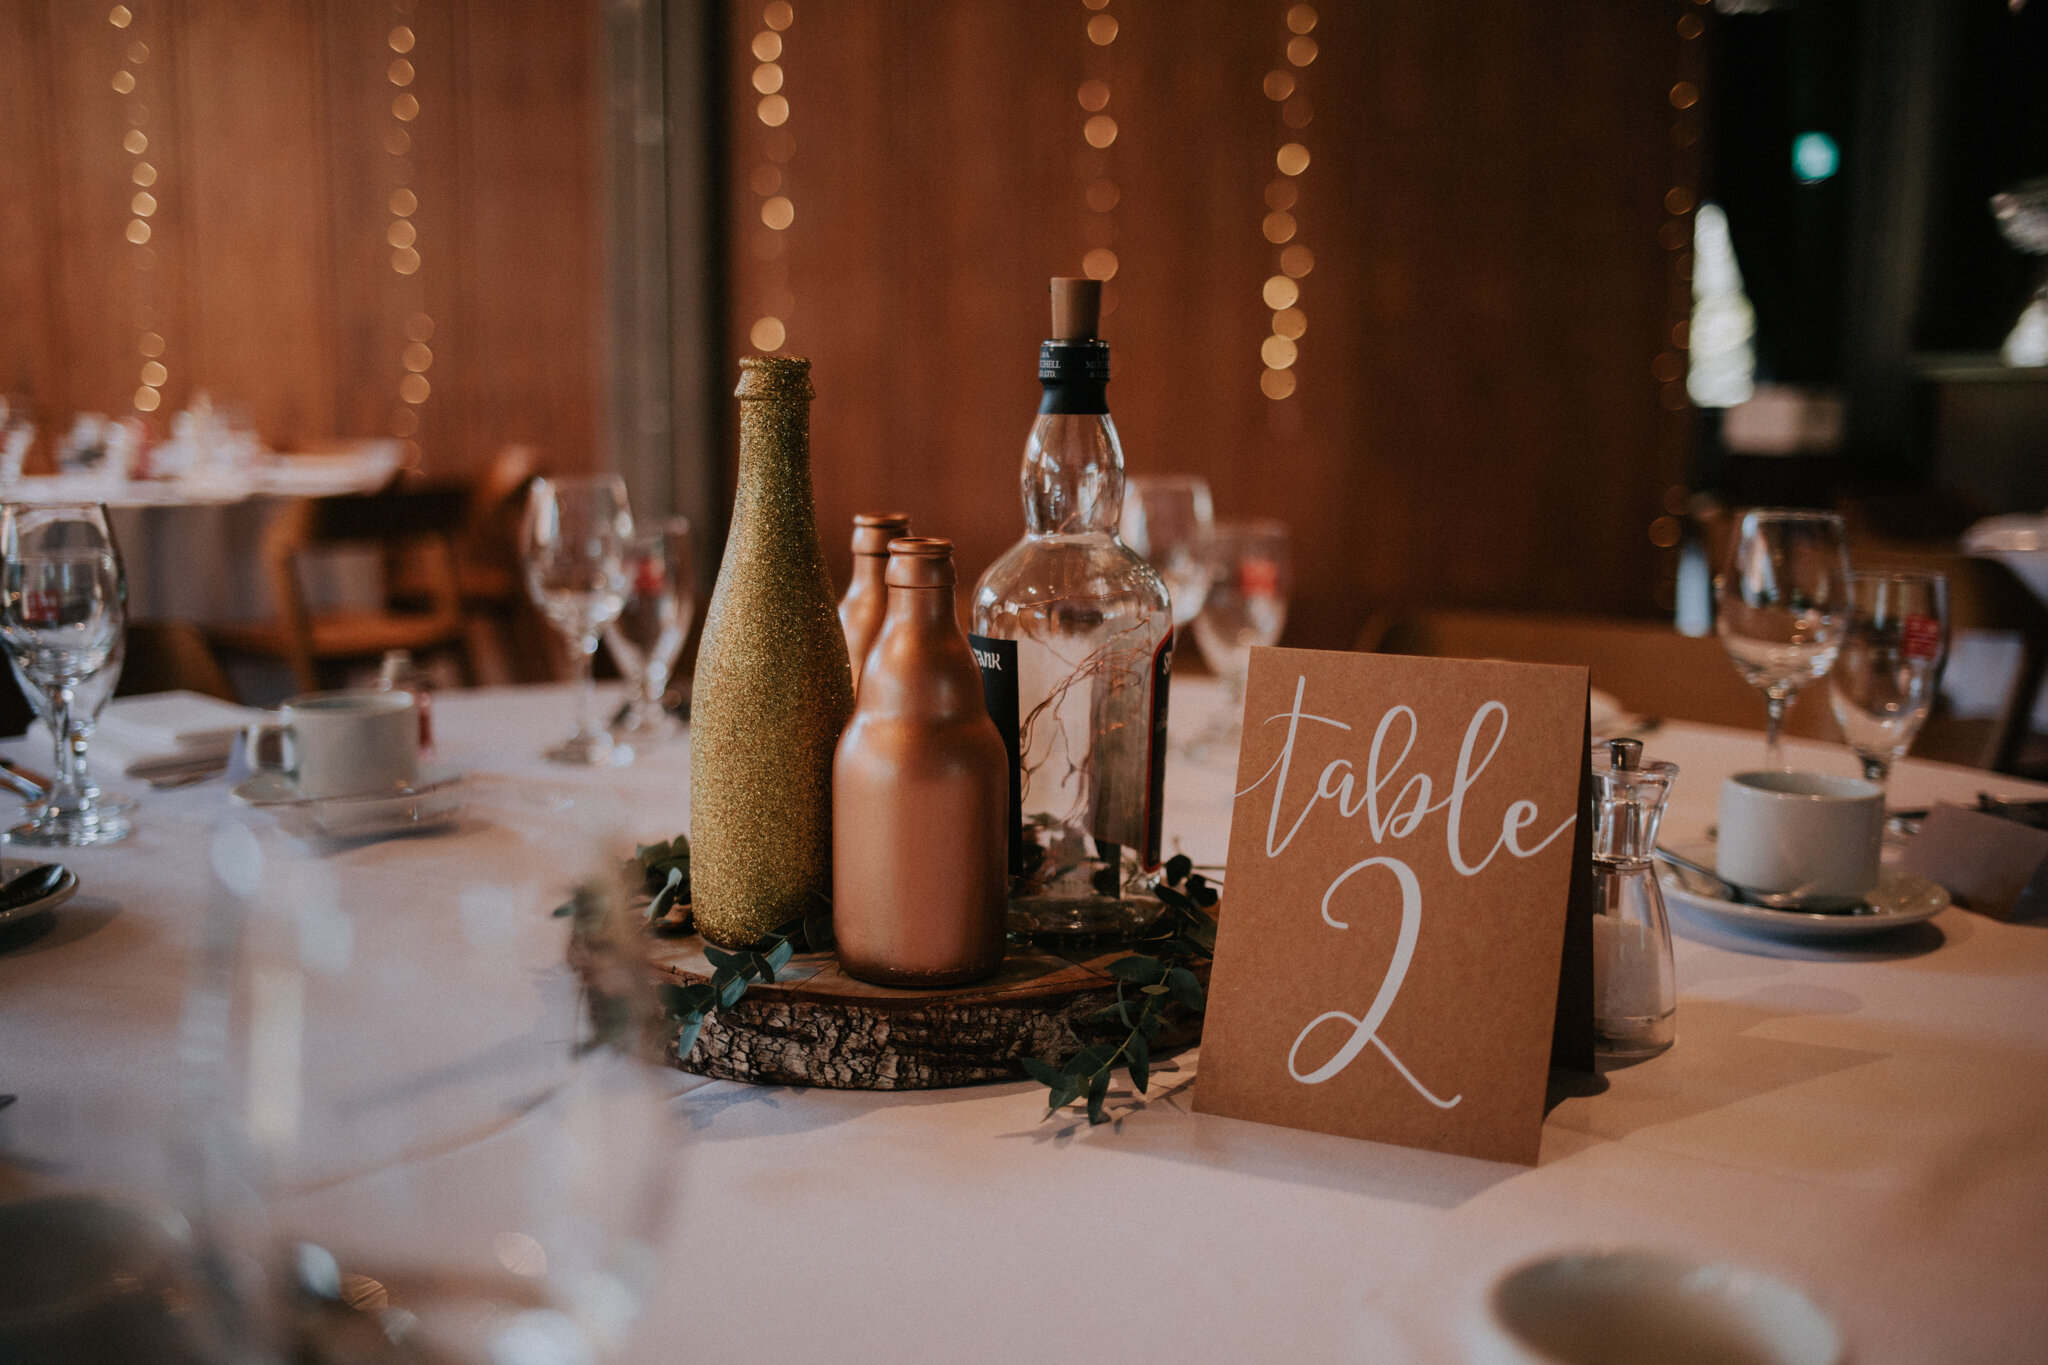 Close up details of the table decor at West on the Green